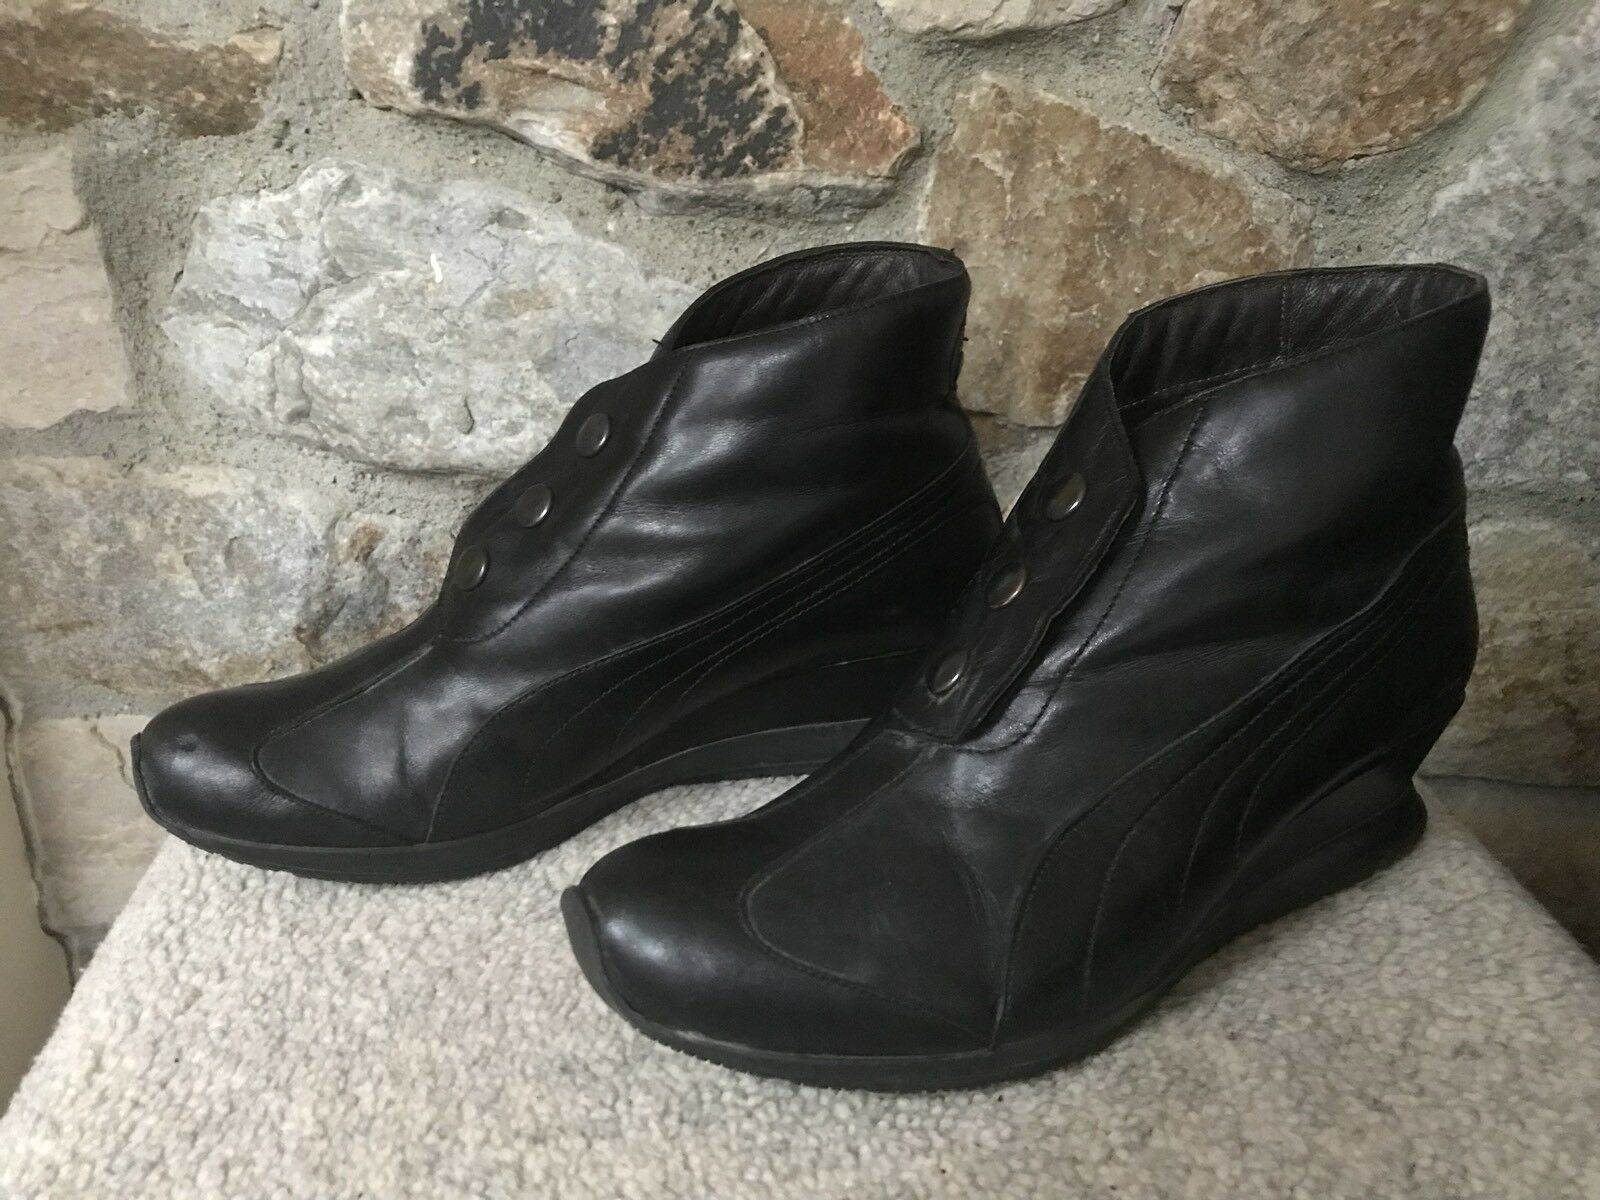 96 Hours PUMA Snap Front BLACK Leather Wedge Ankle Boots Women's Euro 40 US 9